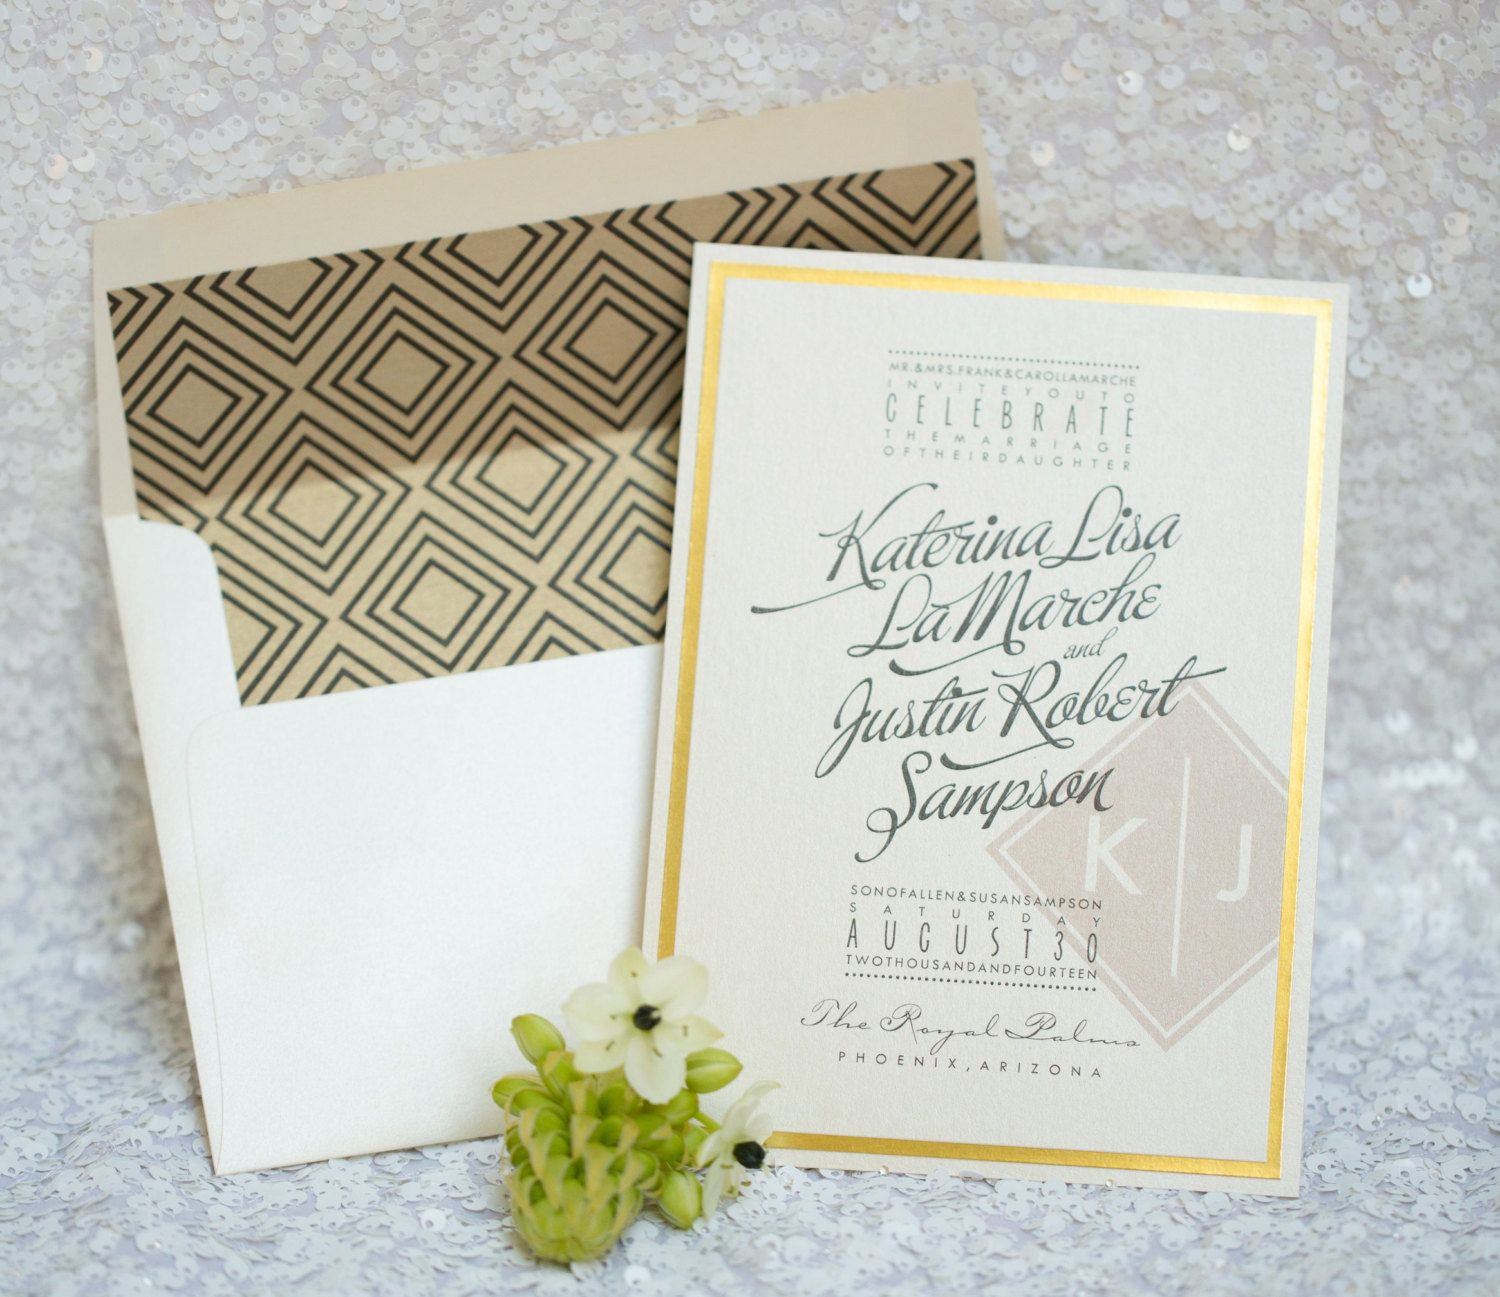 Ivory And Gold Foil Wedding Invitations Royal Romance As Seen On Style Me Pretty Black Blush Monogram Art Deco By: Ivory Deco Wedding Invitations At Websimilar.org